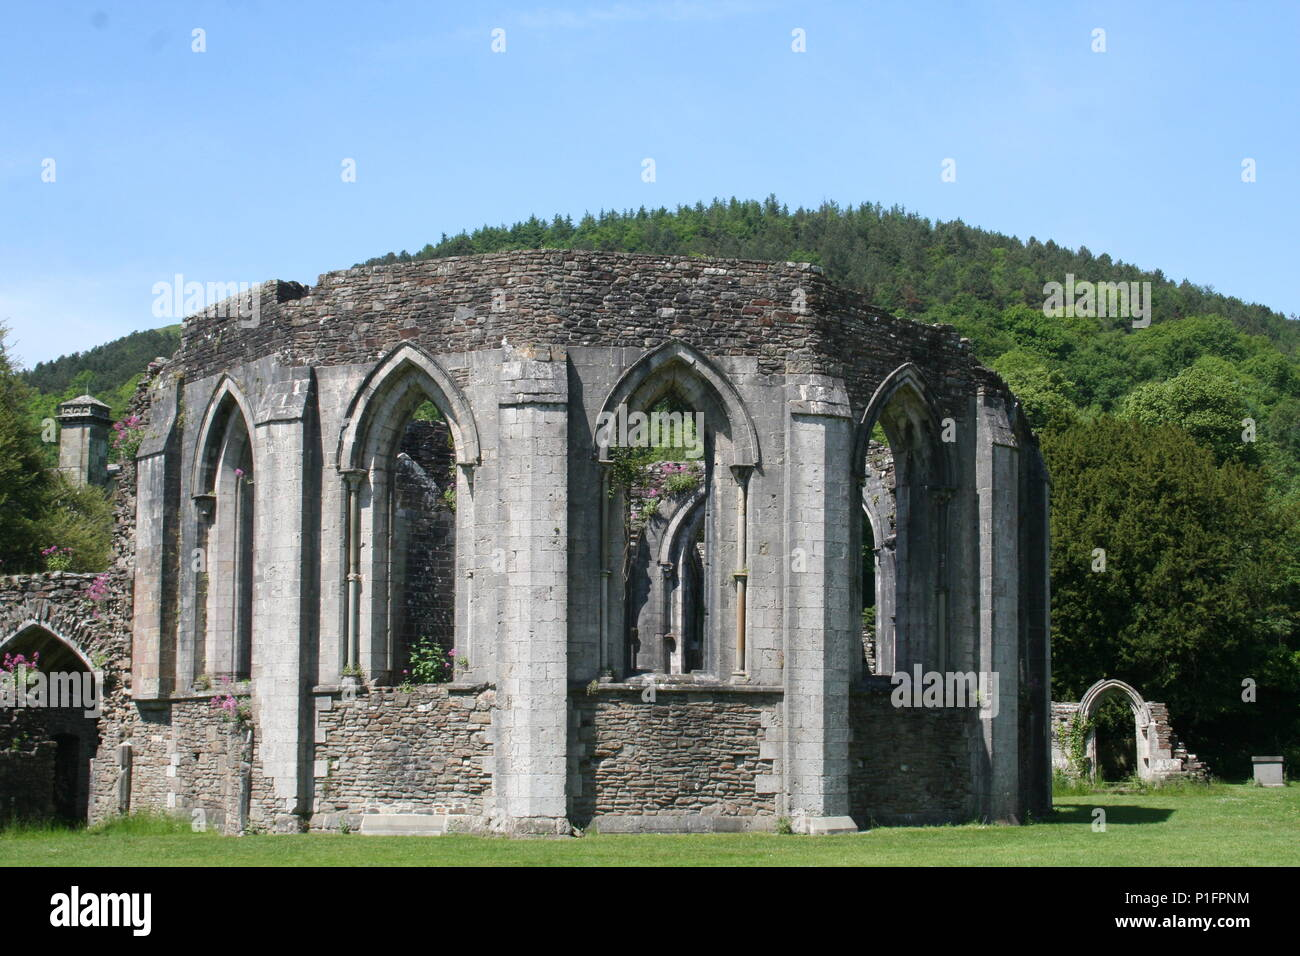 Margam country park with an industrial past and full of historical features set in 1000 acres of rolling countryside Stock Photo